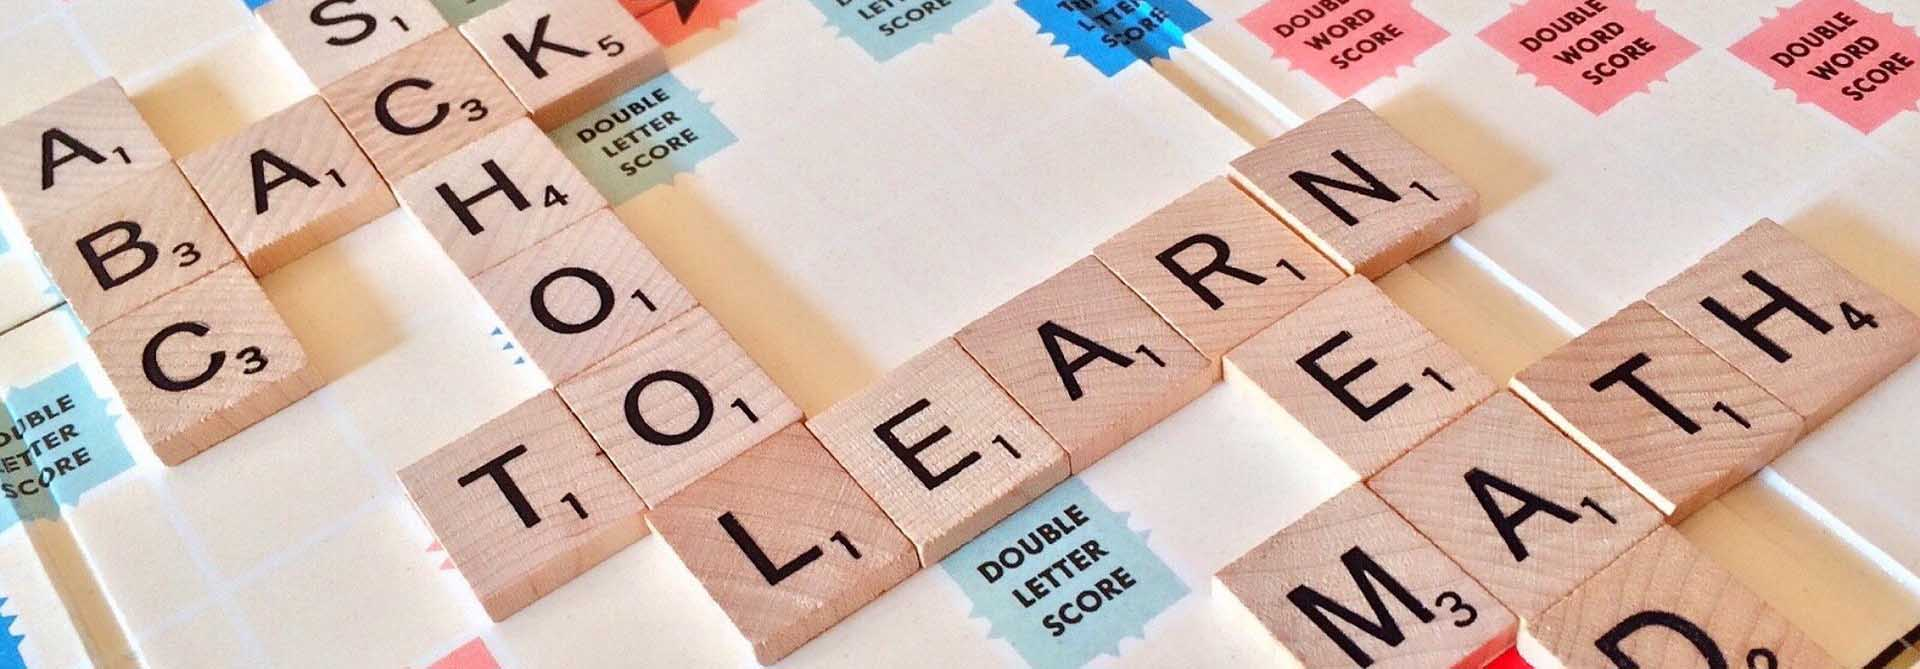 INDOOR ARENA: Board Games - Scrabble - is it time to go back to school yet?